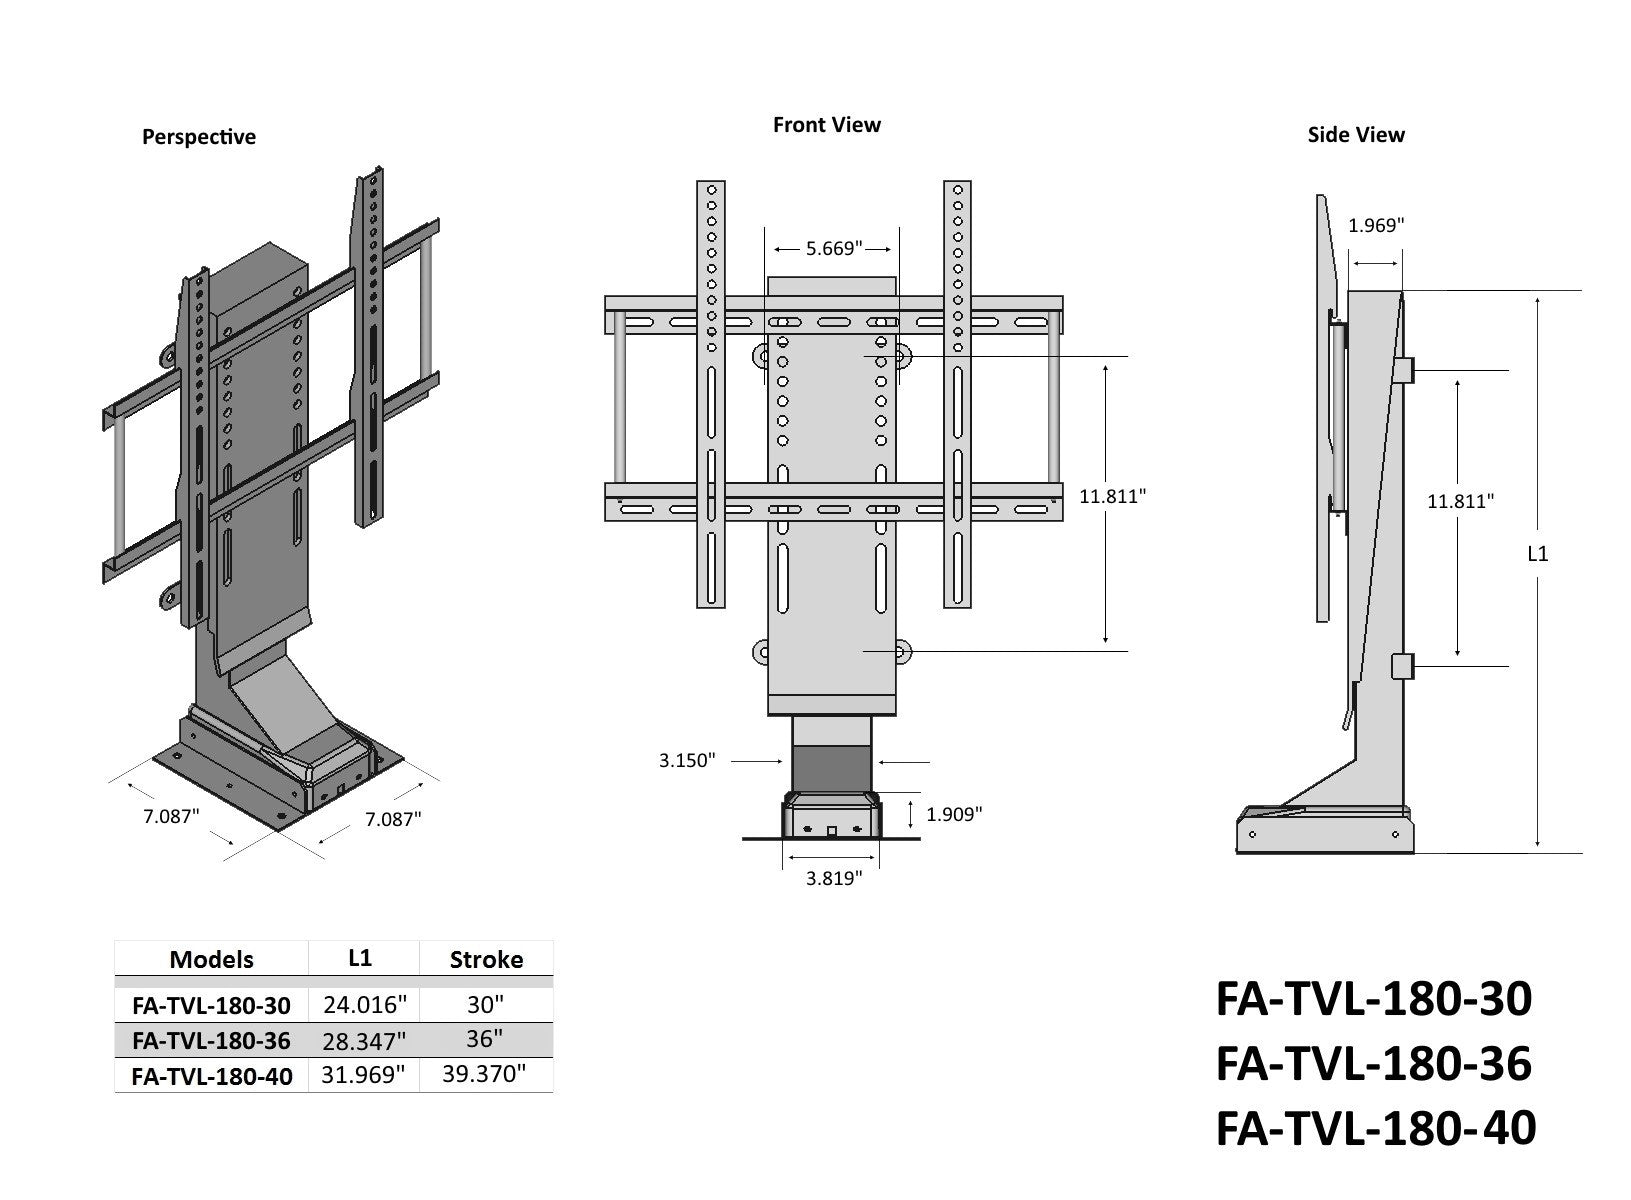 TVL-180 Lift Dimensions